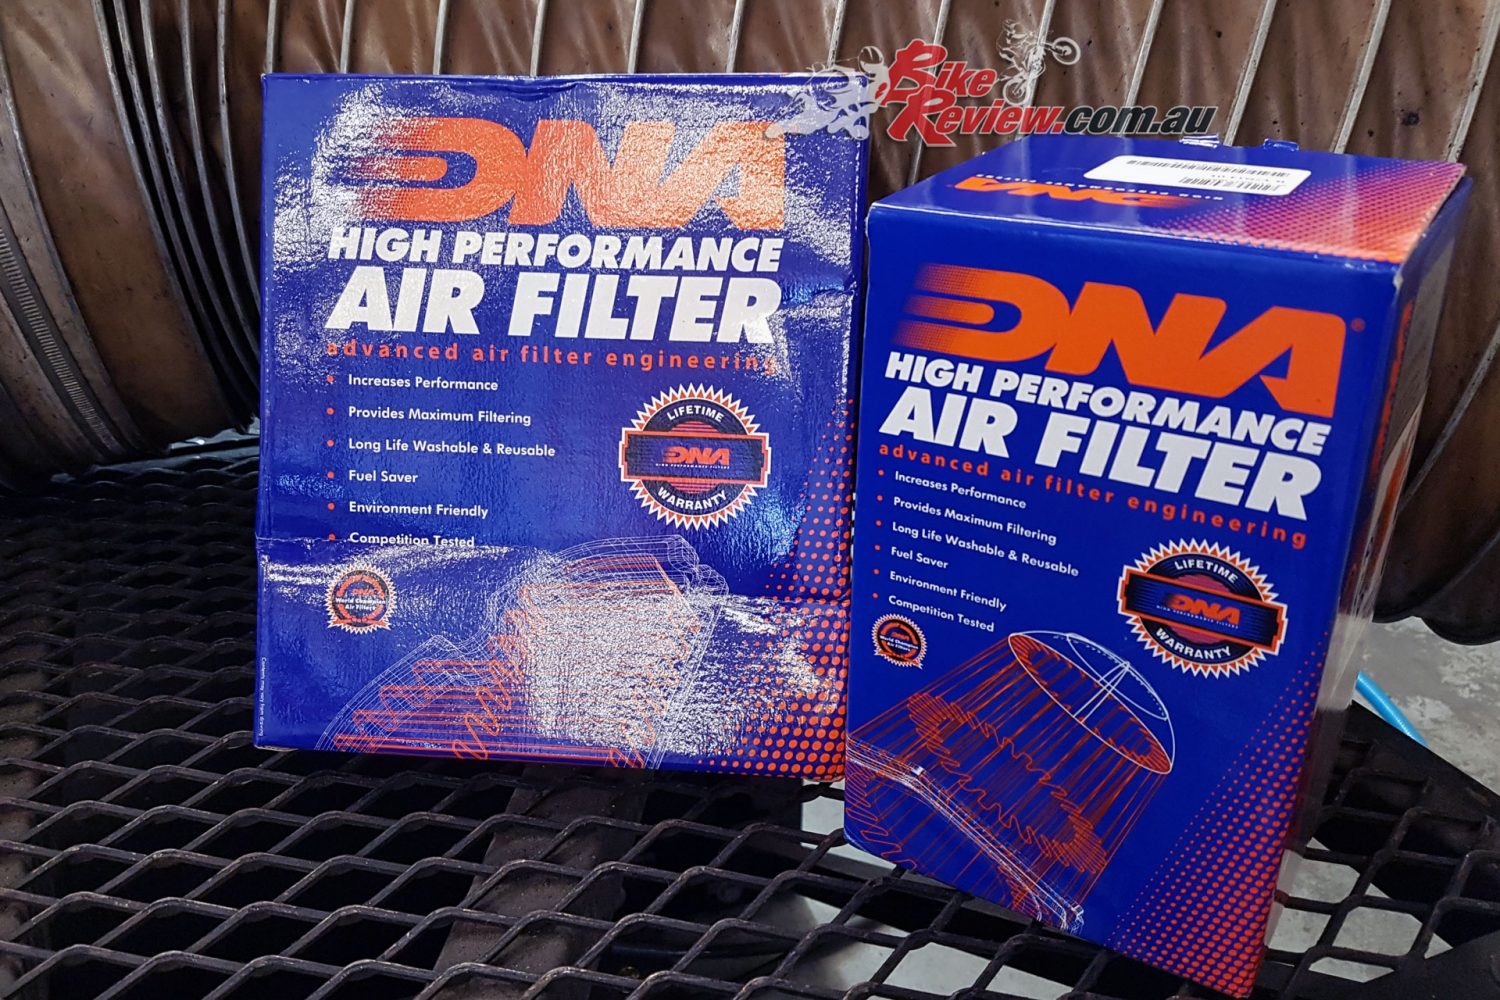 DNA High Performance Airfilter and Stage 2 Airbox Lid Kit - From Kenma Australia